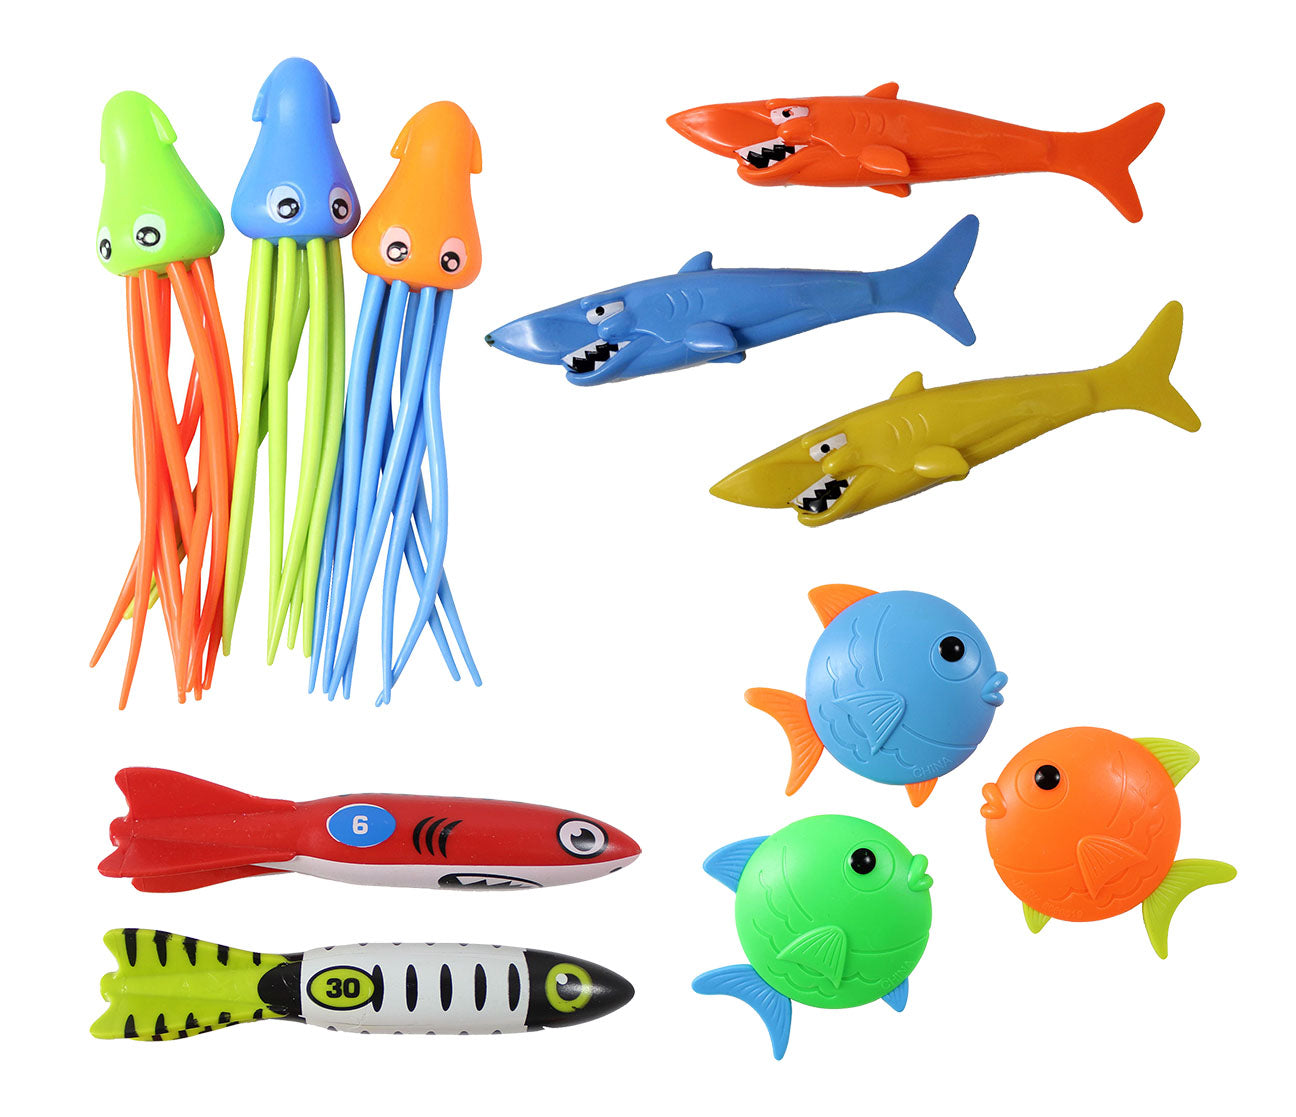 Set of 11 Ocean Creature Bundle of Pool Dive Toys - Pool, Beach and Bath Toy Dives - Sinking and Gliding - Throw Underwater